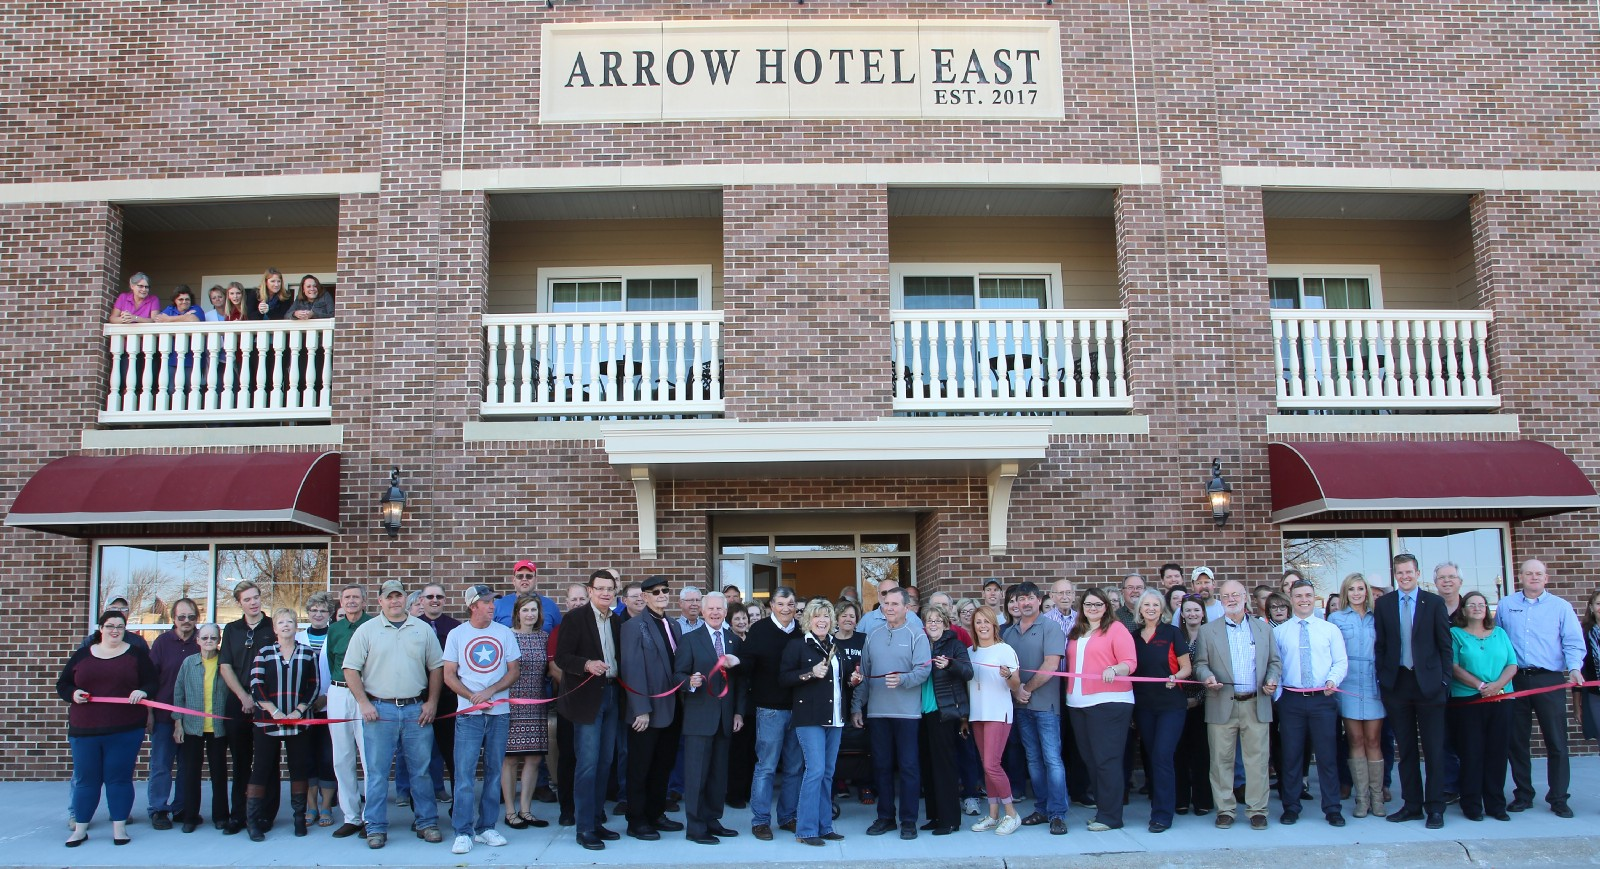 Arrow Hotel East Formally Cuts The Ribbon And Beckons Guests To Broken Bow Those Pictured Above Include Owners Rj Anne Thomas Matt Cathy